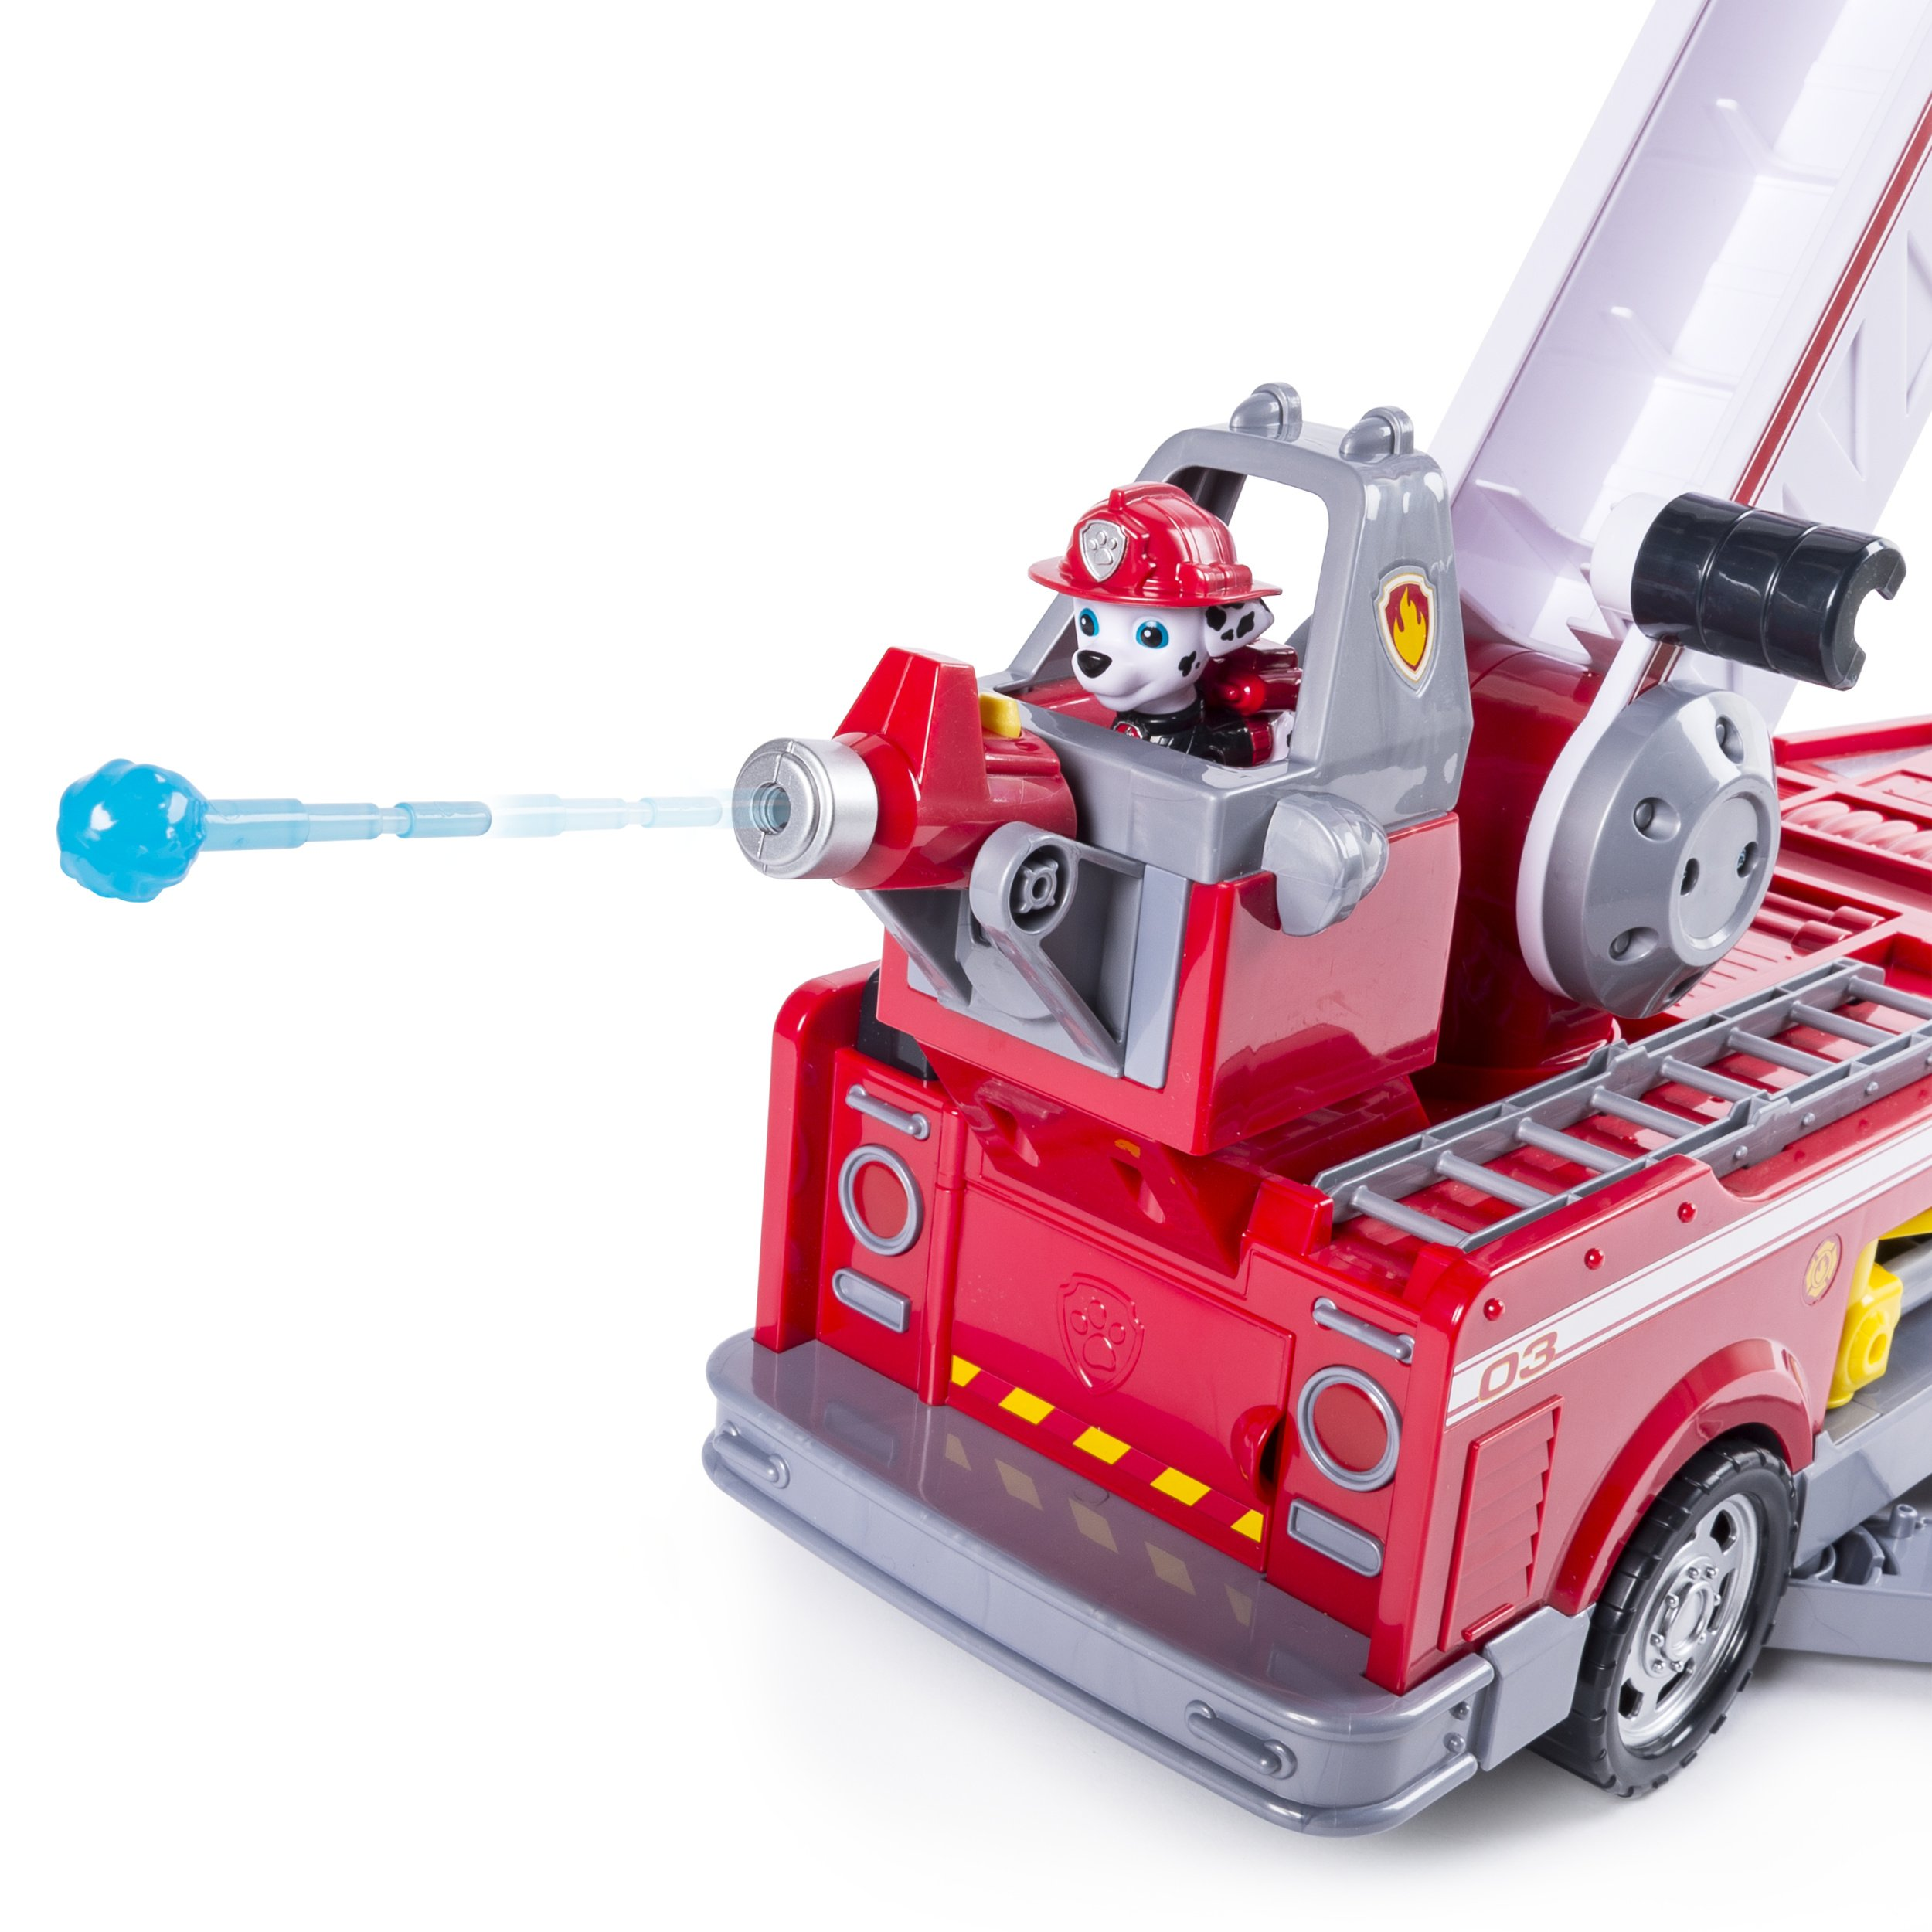 PAW Patrol - Ultimate Rescue Fire Truck with Extendable 2 ft. Tall Ladder, for Ages 3 and Up by Paw Patrol (Image #8)